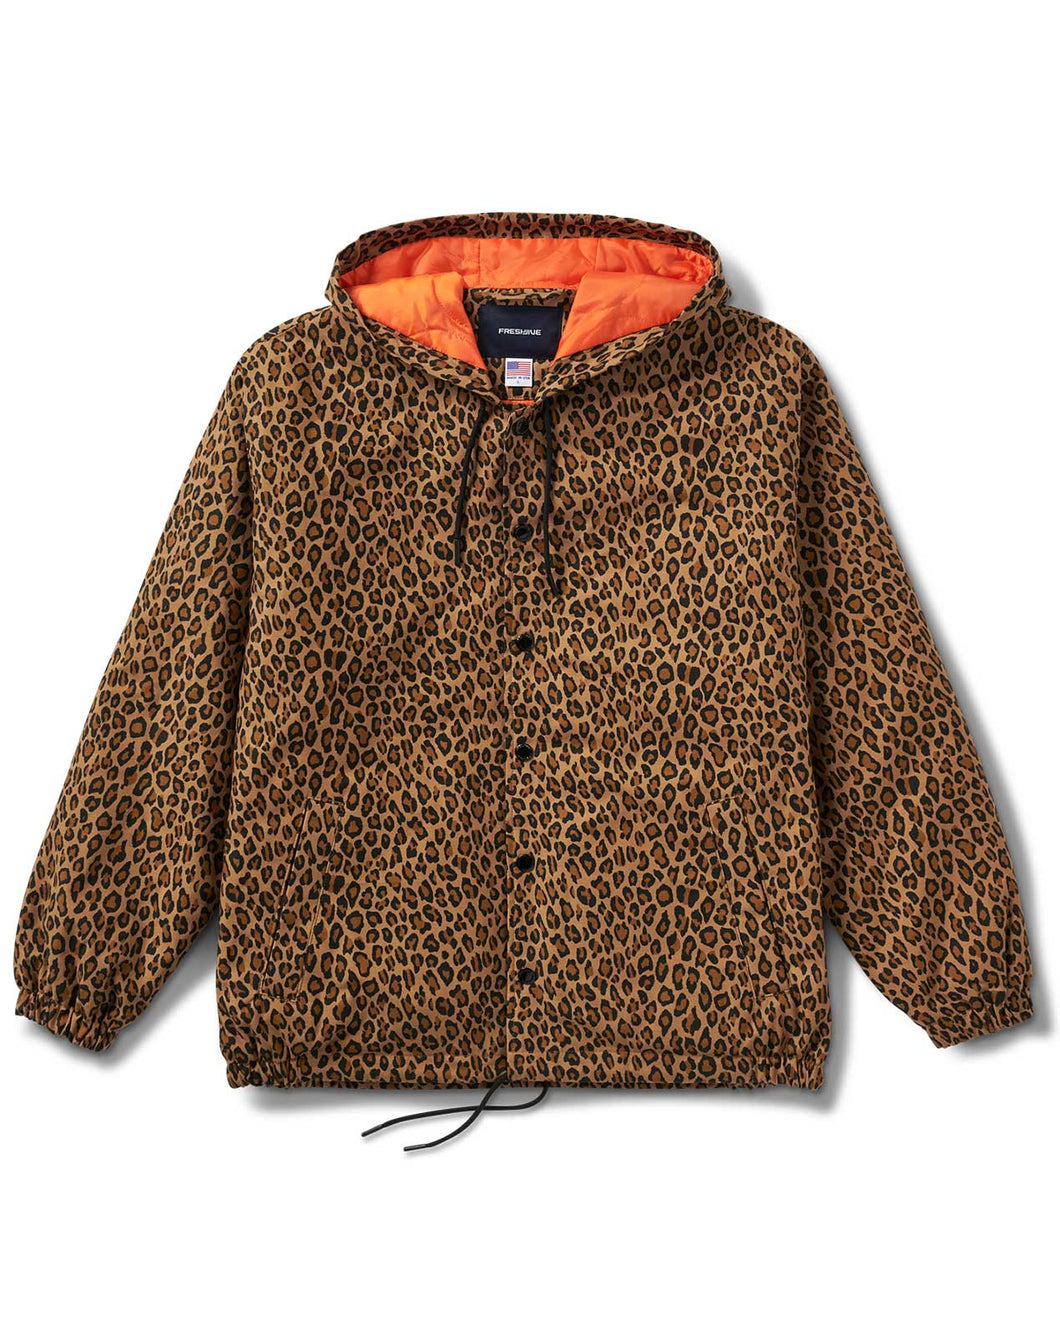 Standards Jacket Leopard